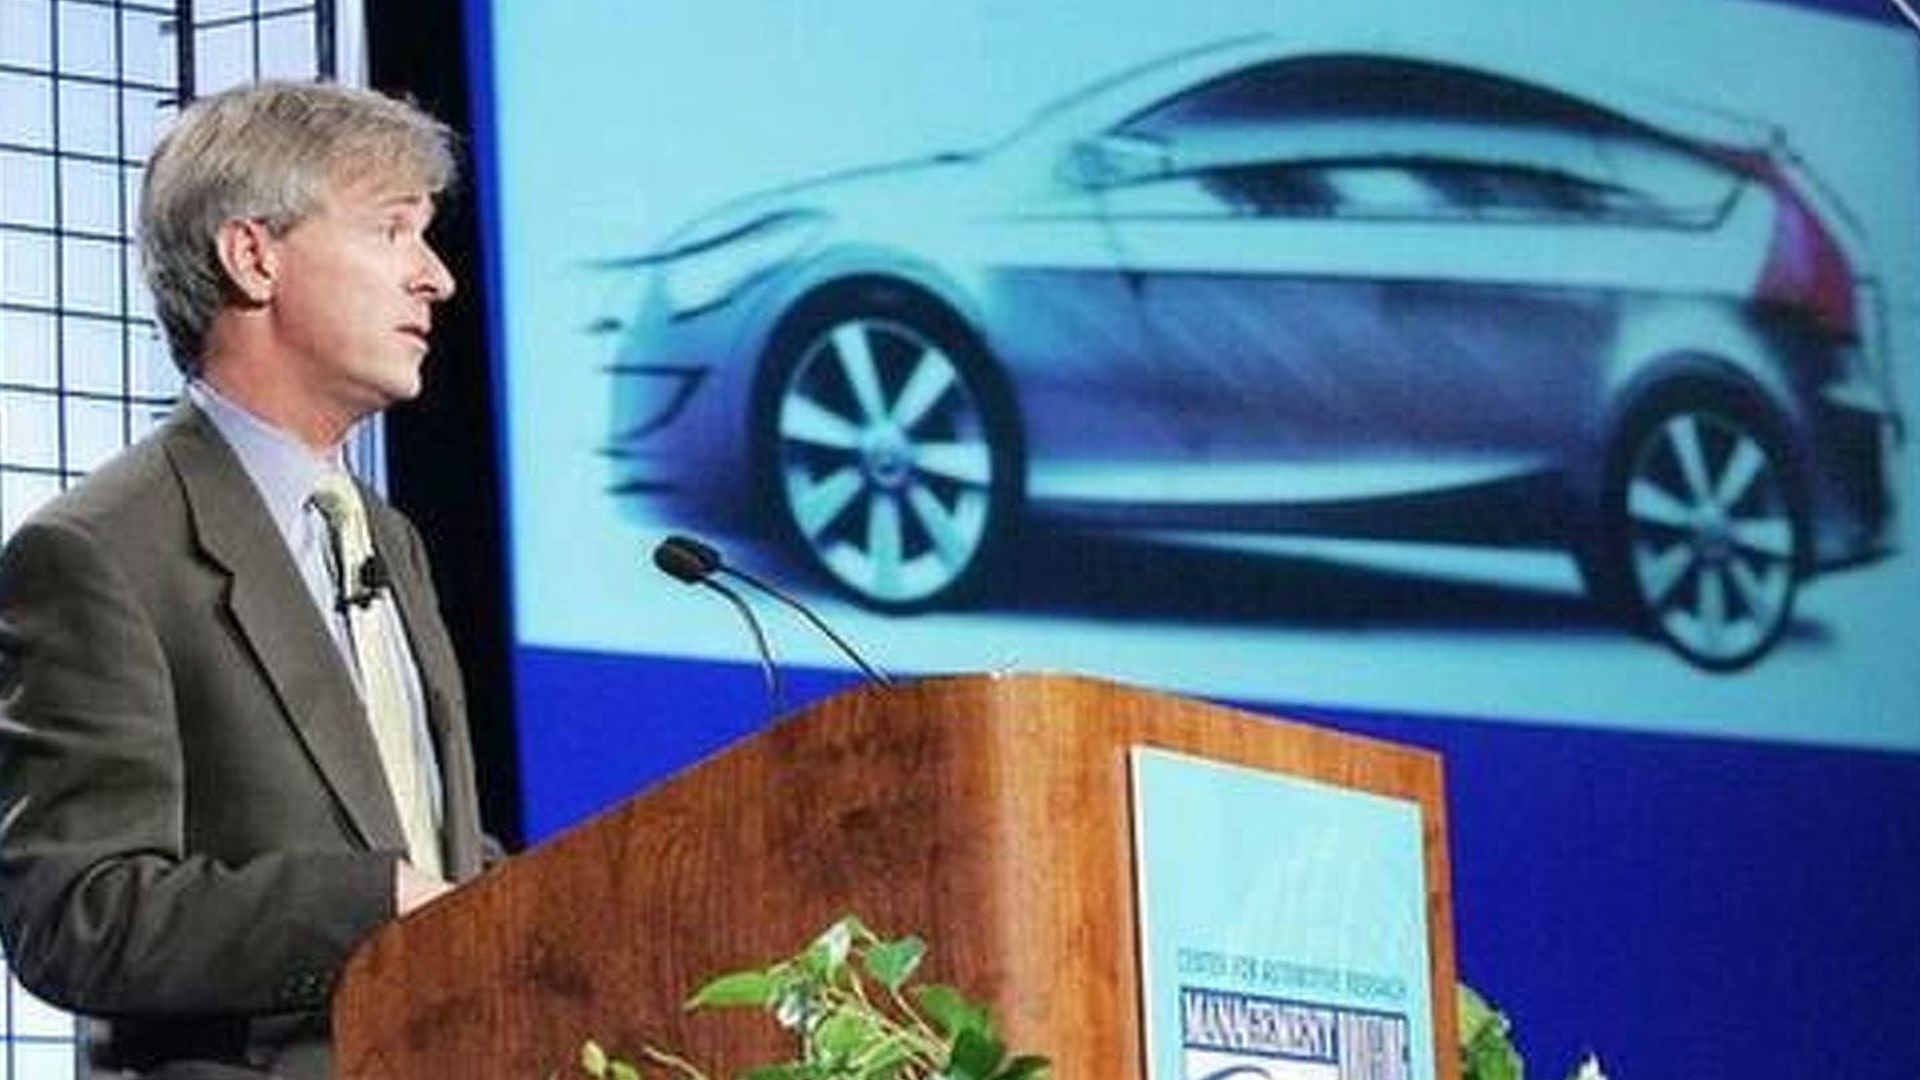 Hyundai Announces Elantra Touring For 2009 Model Year in the U.S.